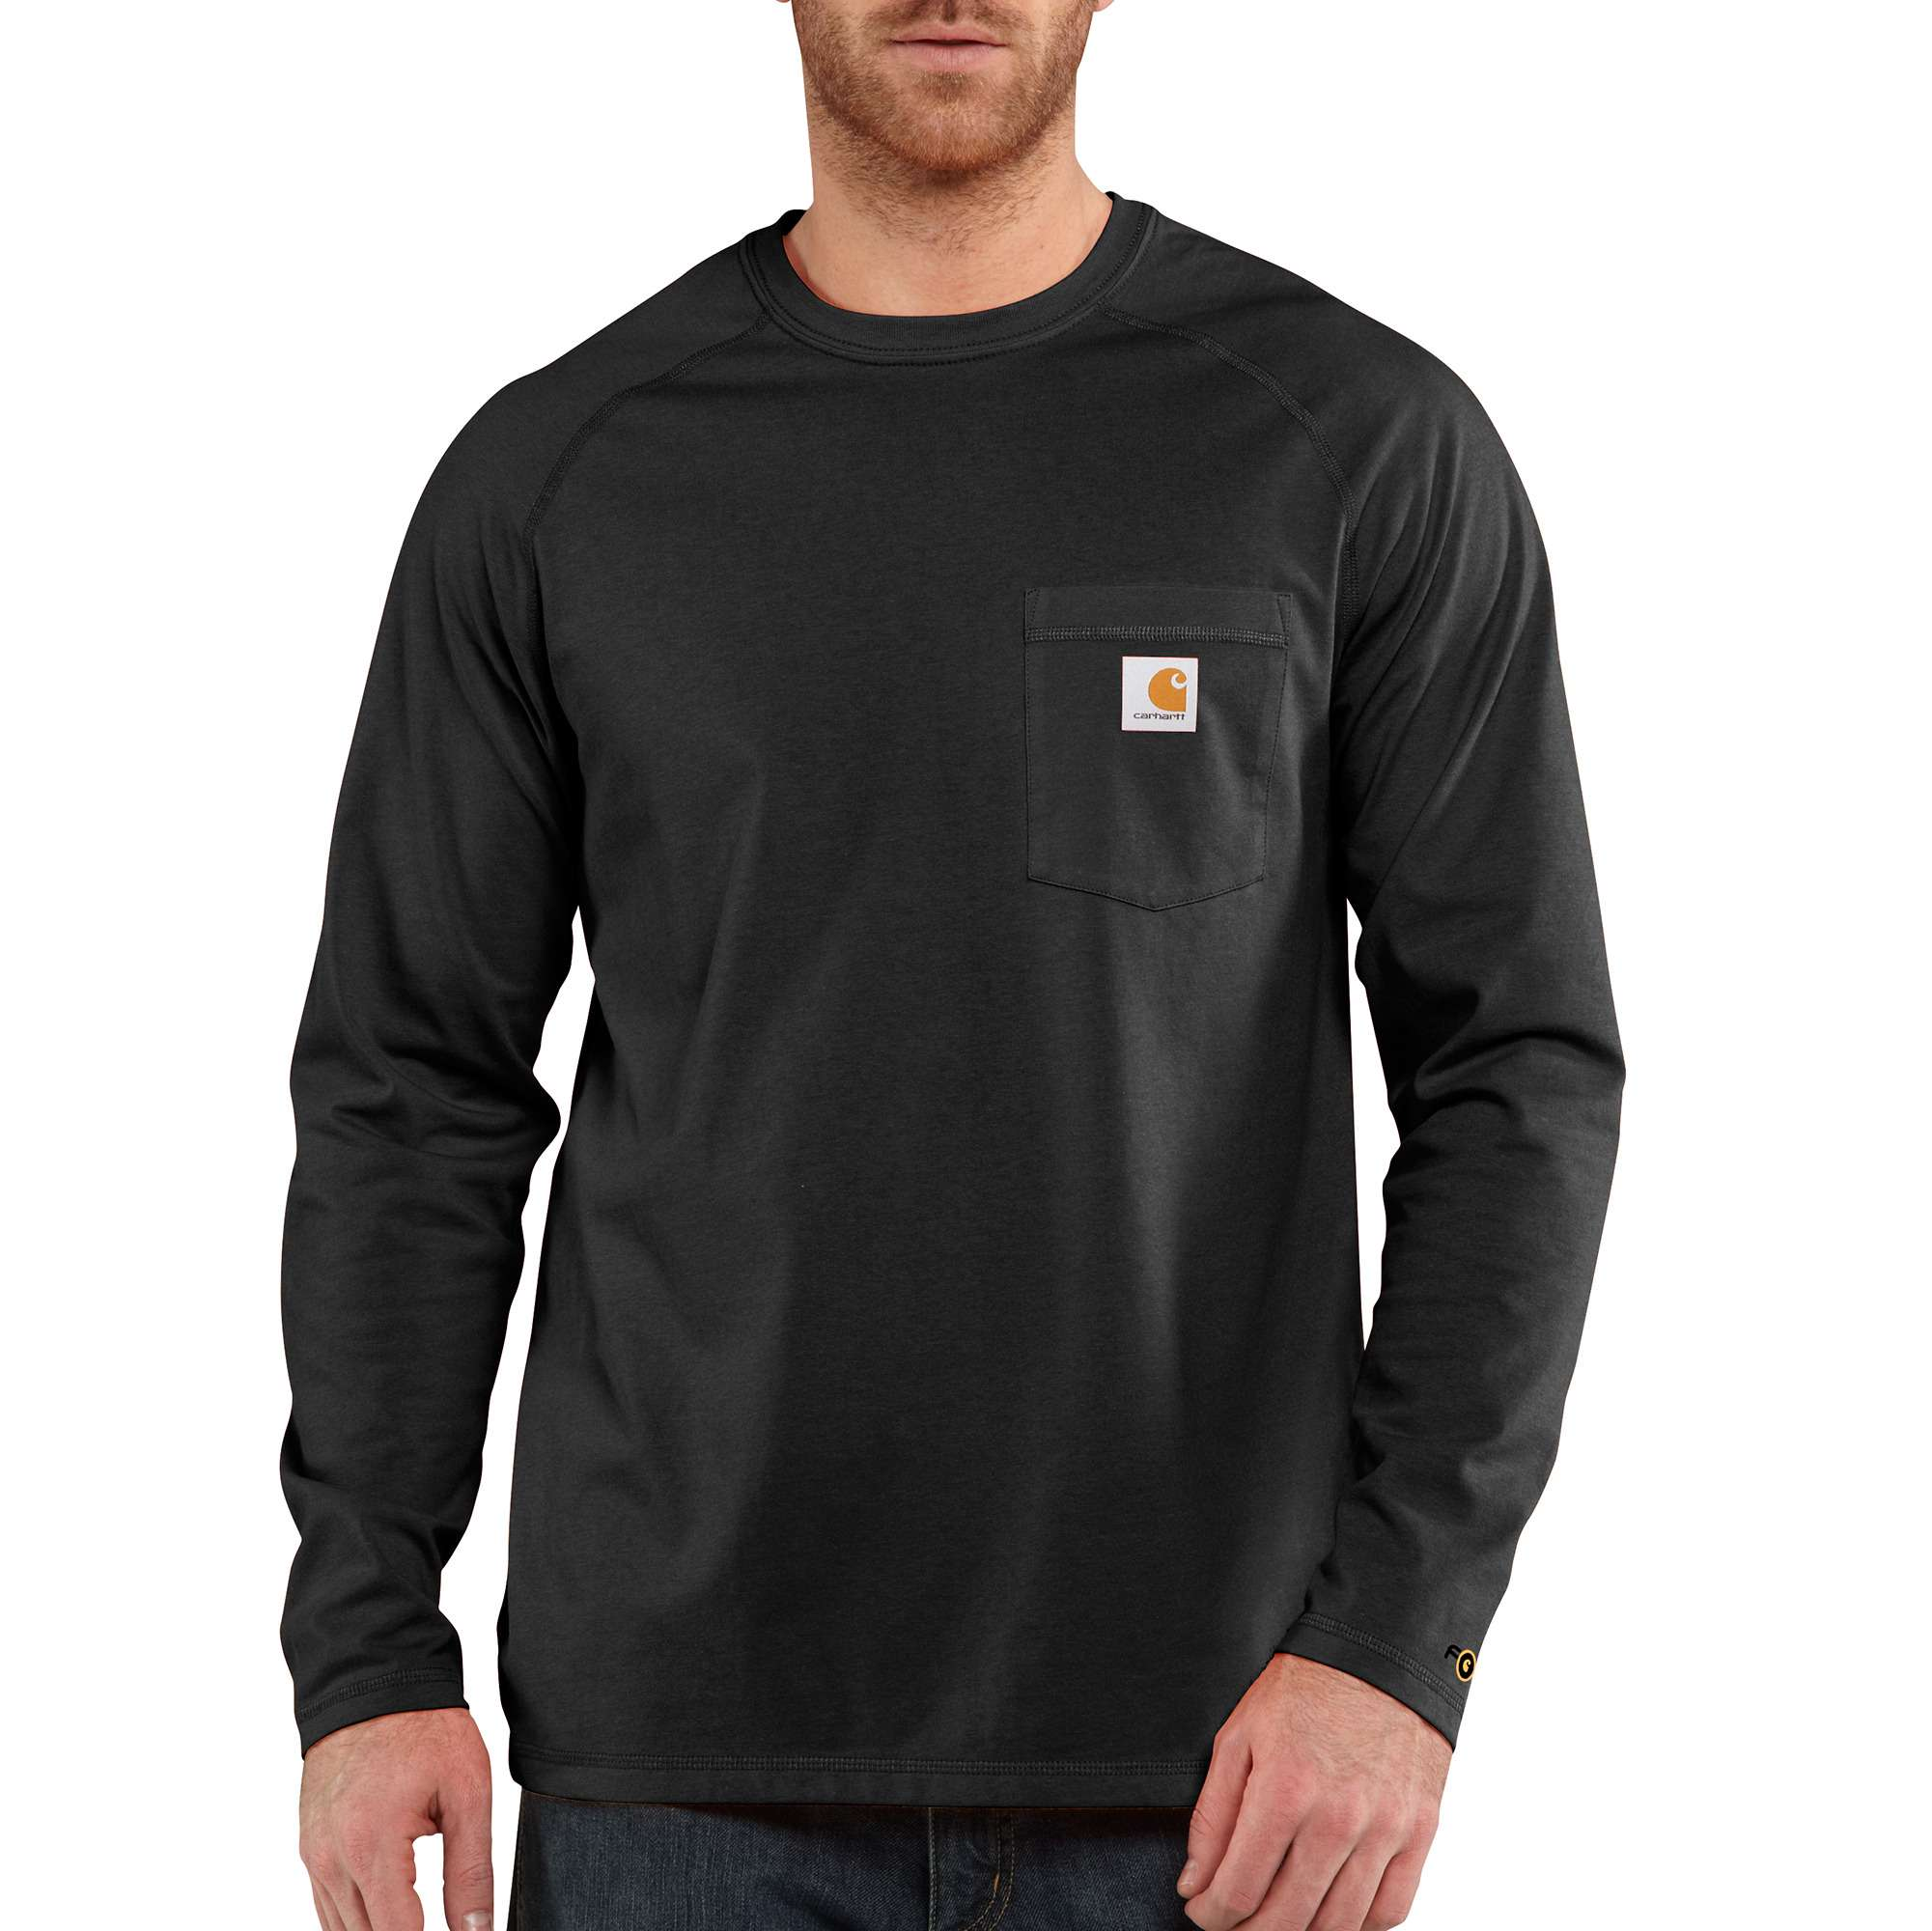 CARHARTT FORCE New Long Sleeve Black size XL Quick Dry /& Odor Resistant NEW!